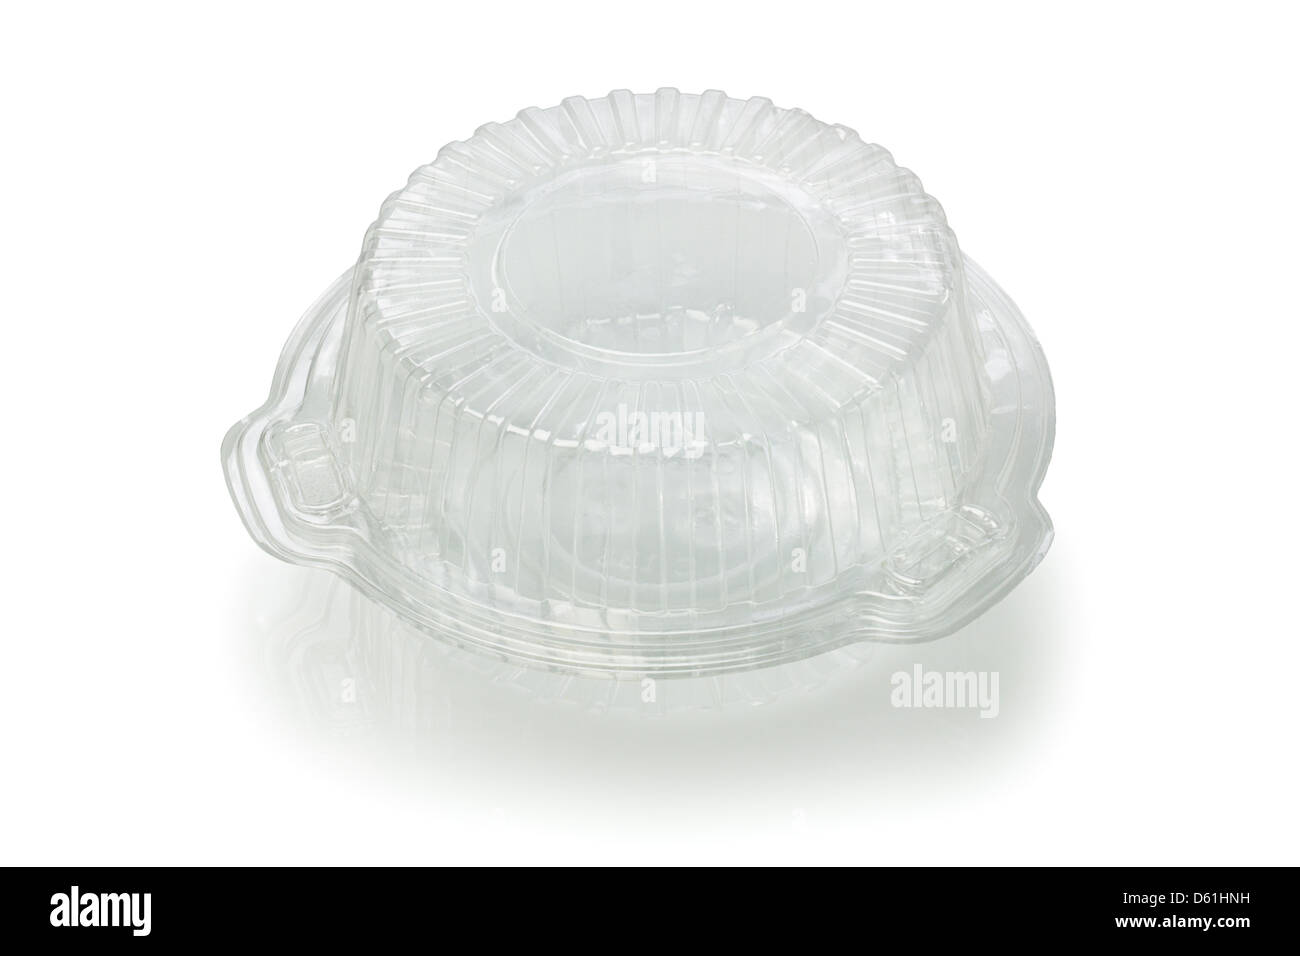 Empty Transparent plastic Container on White Background - Stock Image